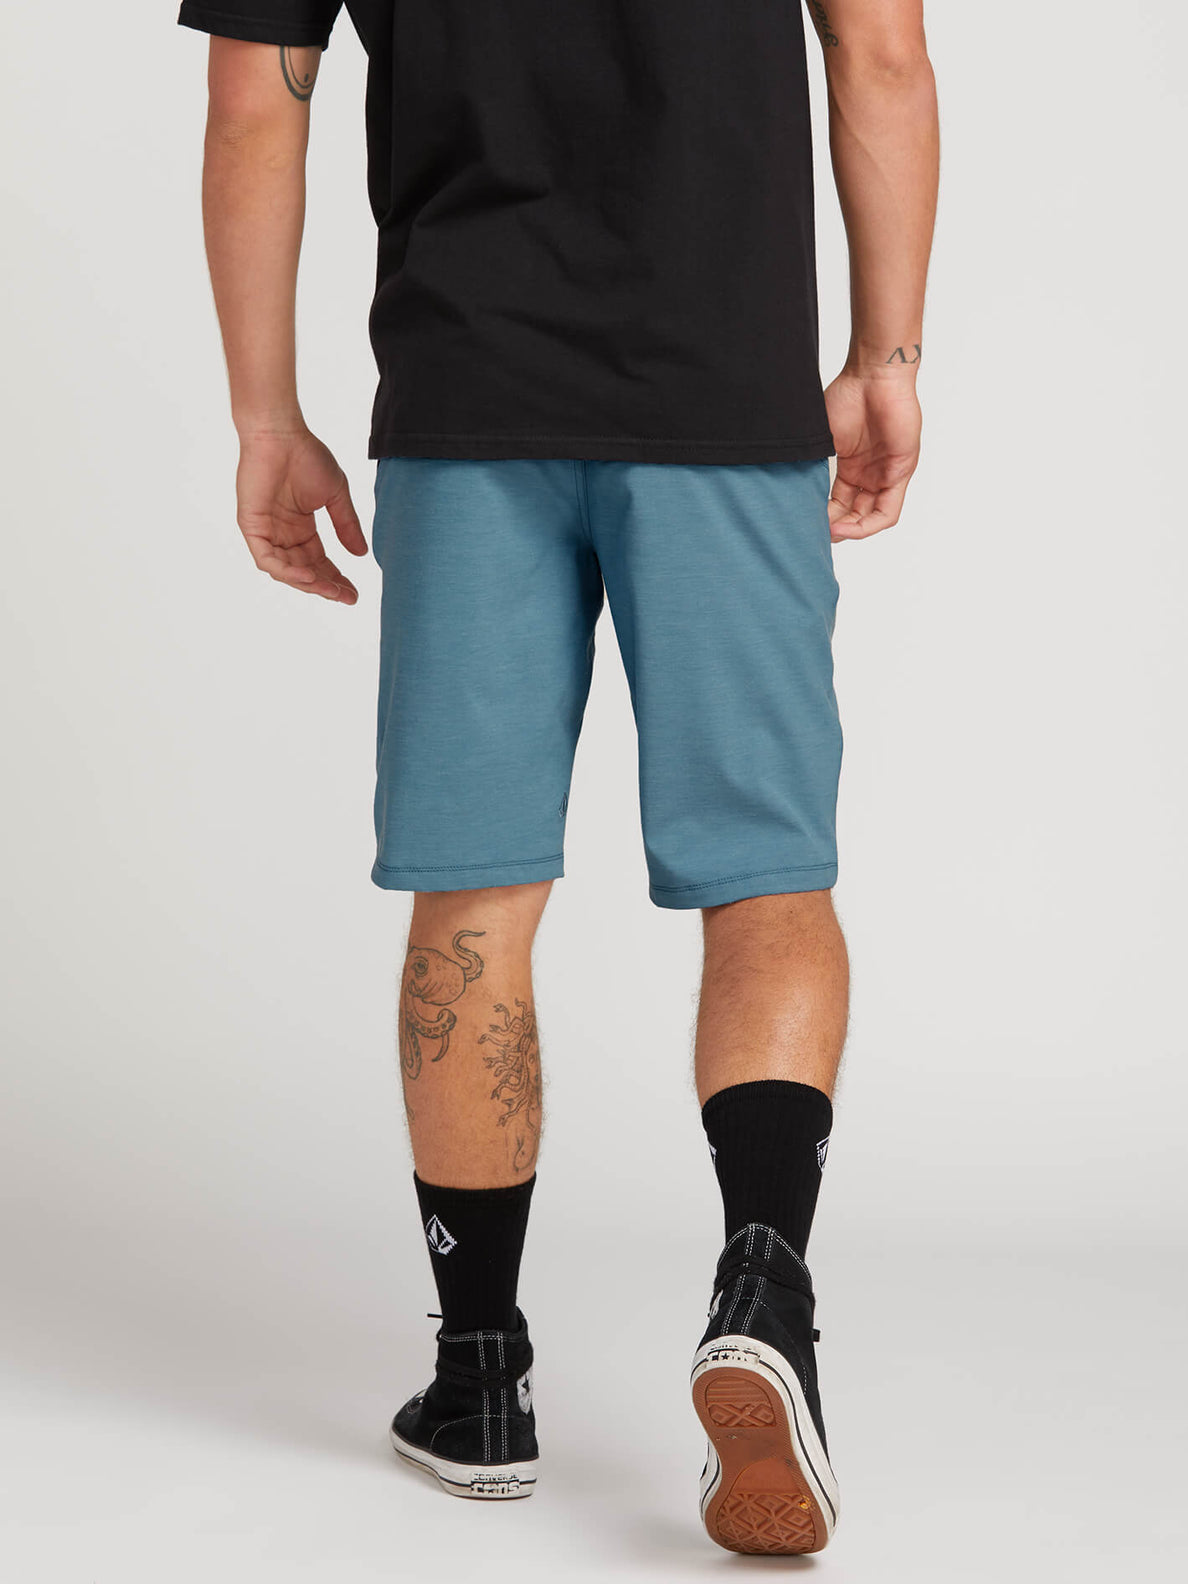 Frickin Surf N' Turf Static Hybrid Shorts In Vintage Blue, Back View